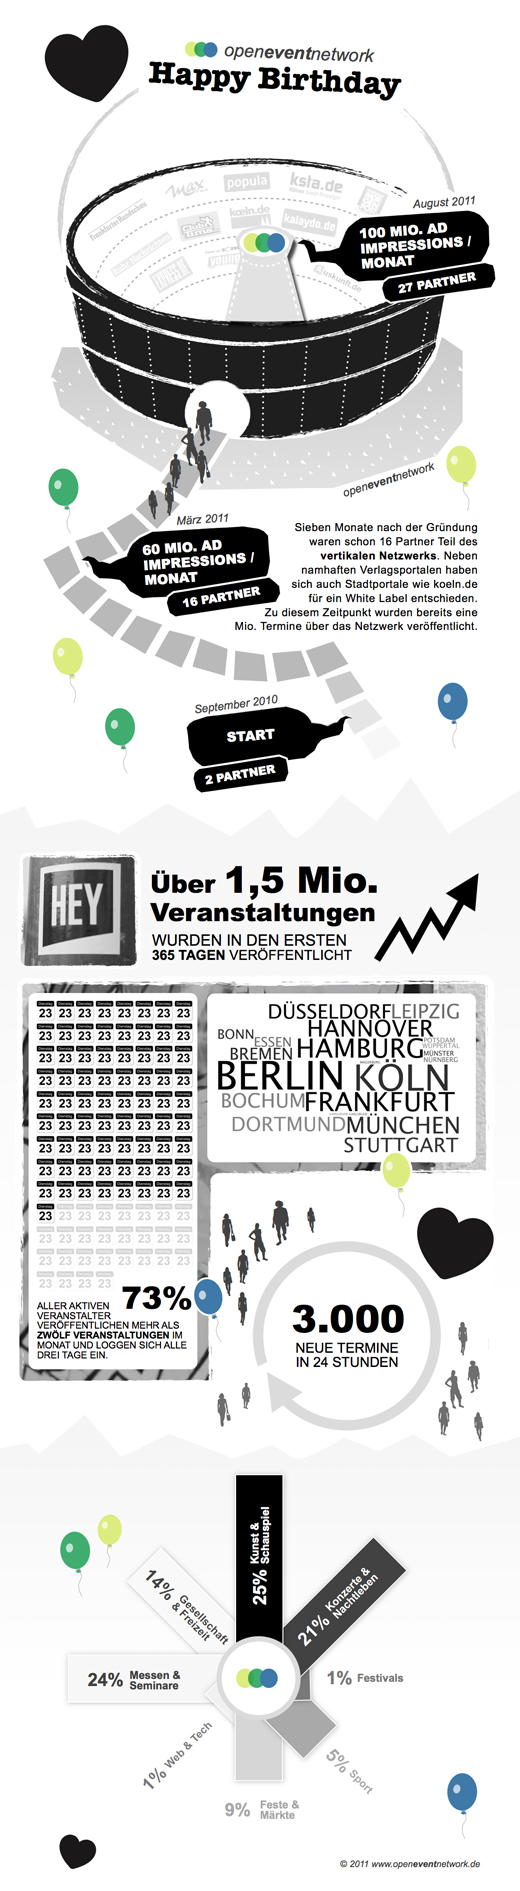 ds_infographic_openeventnet